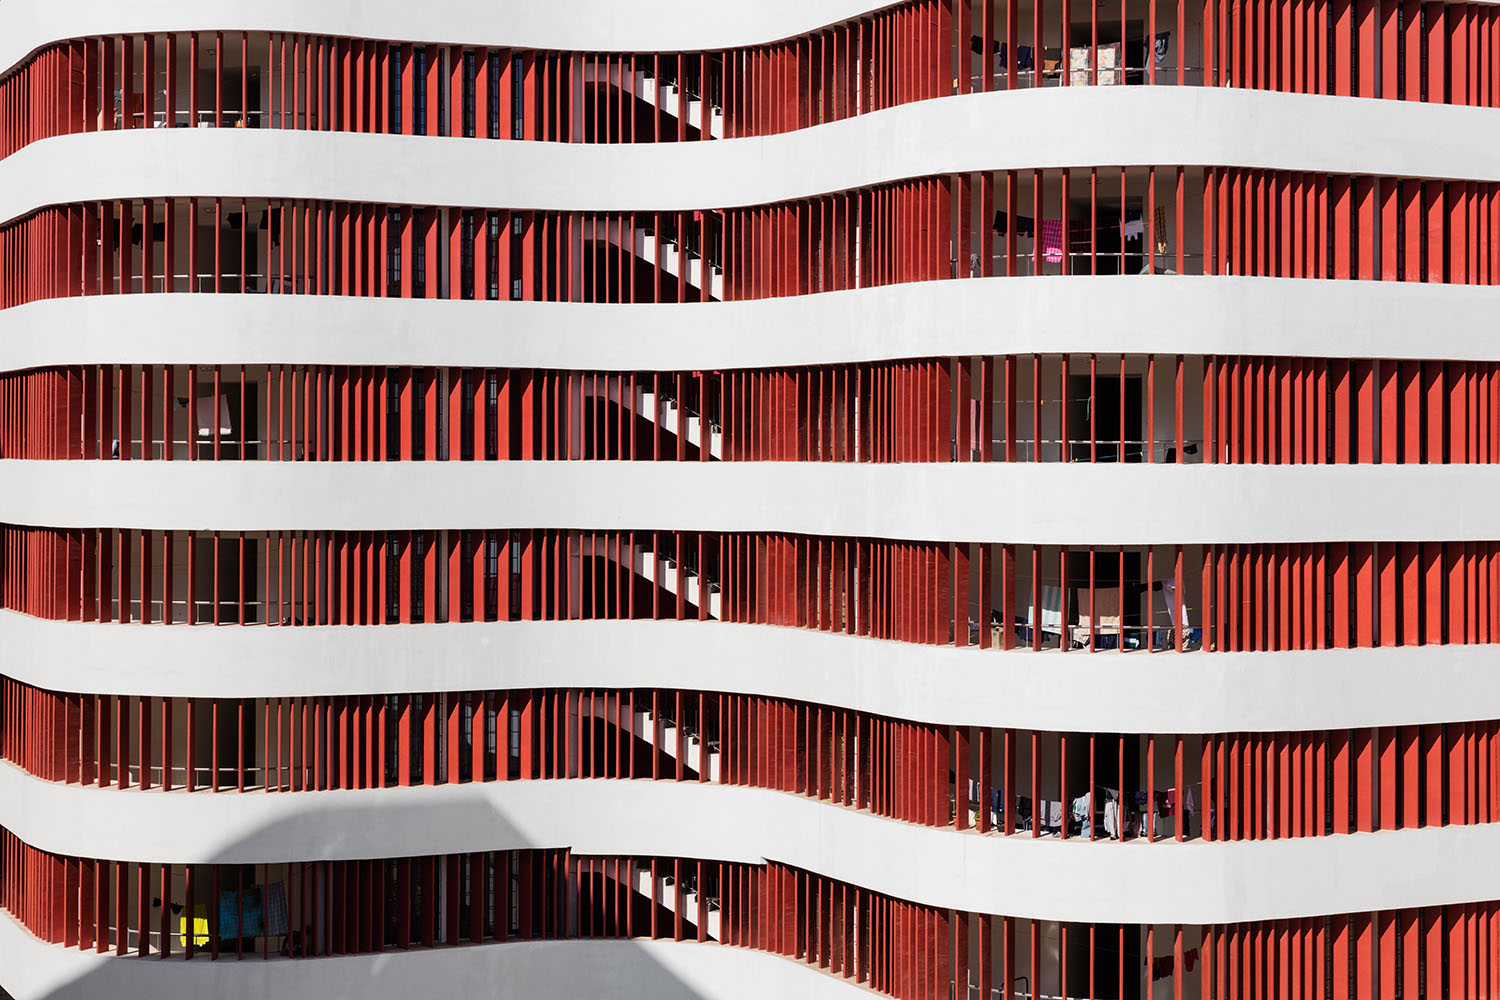 Facade detail: varying density of louvres referring to interior function. Marcus Bredt